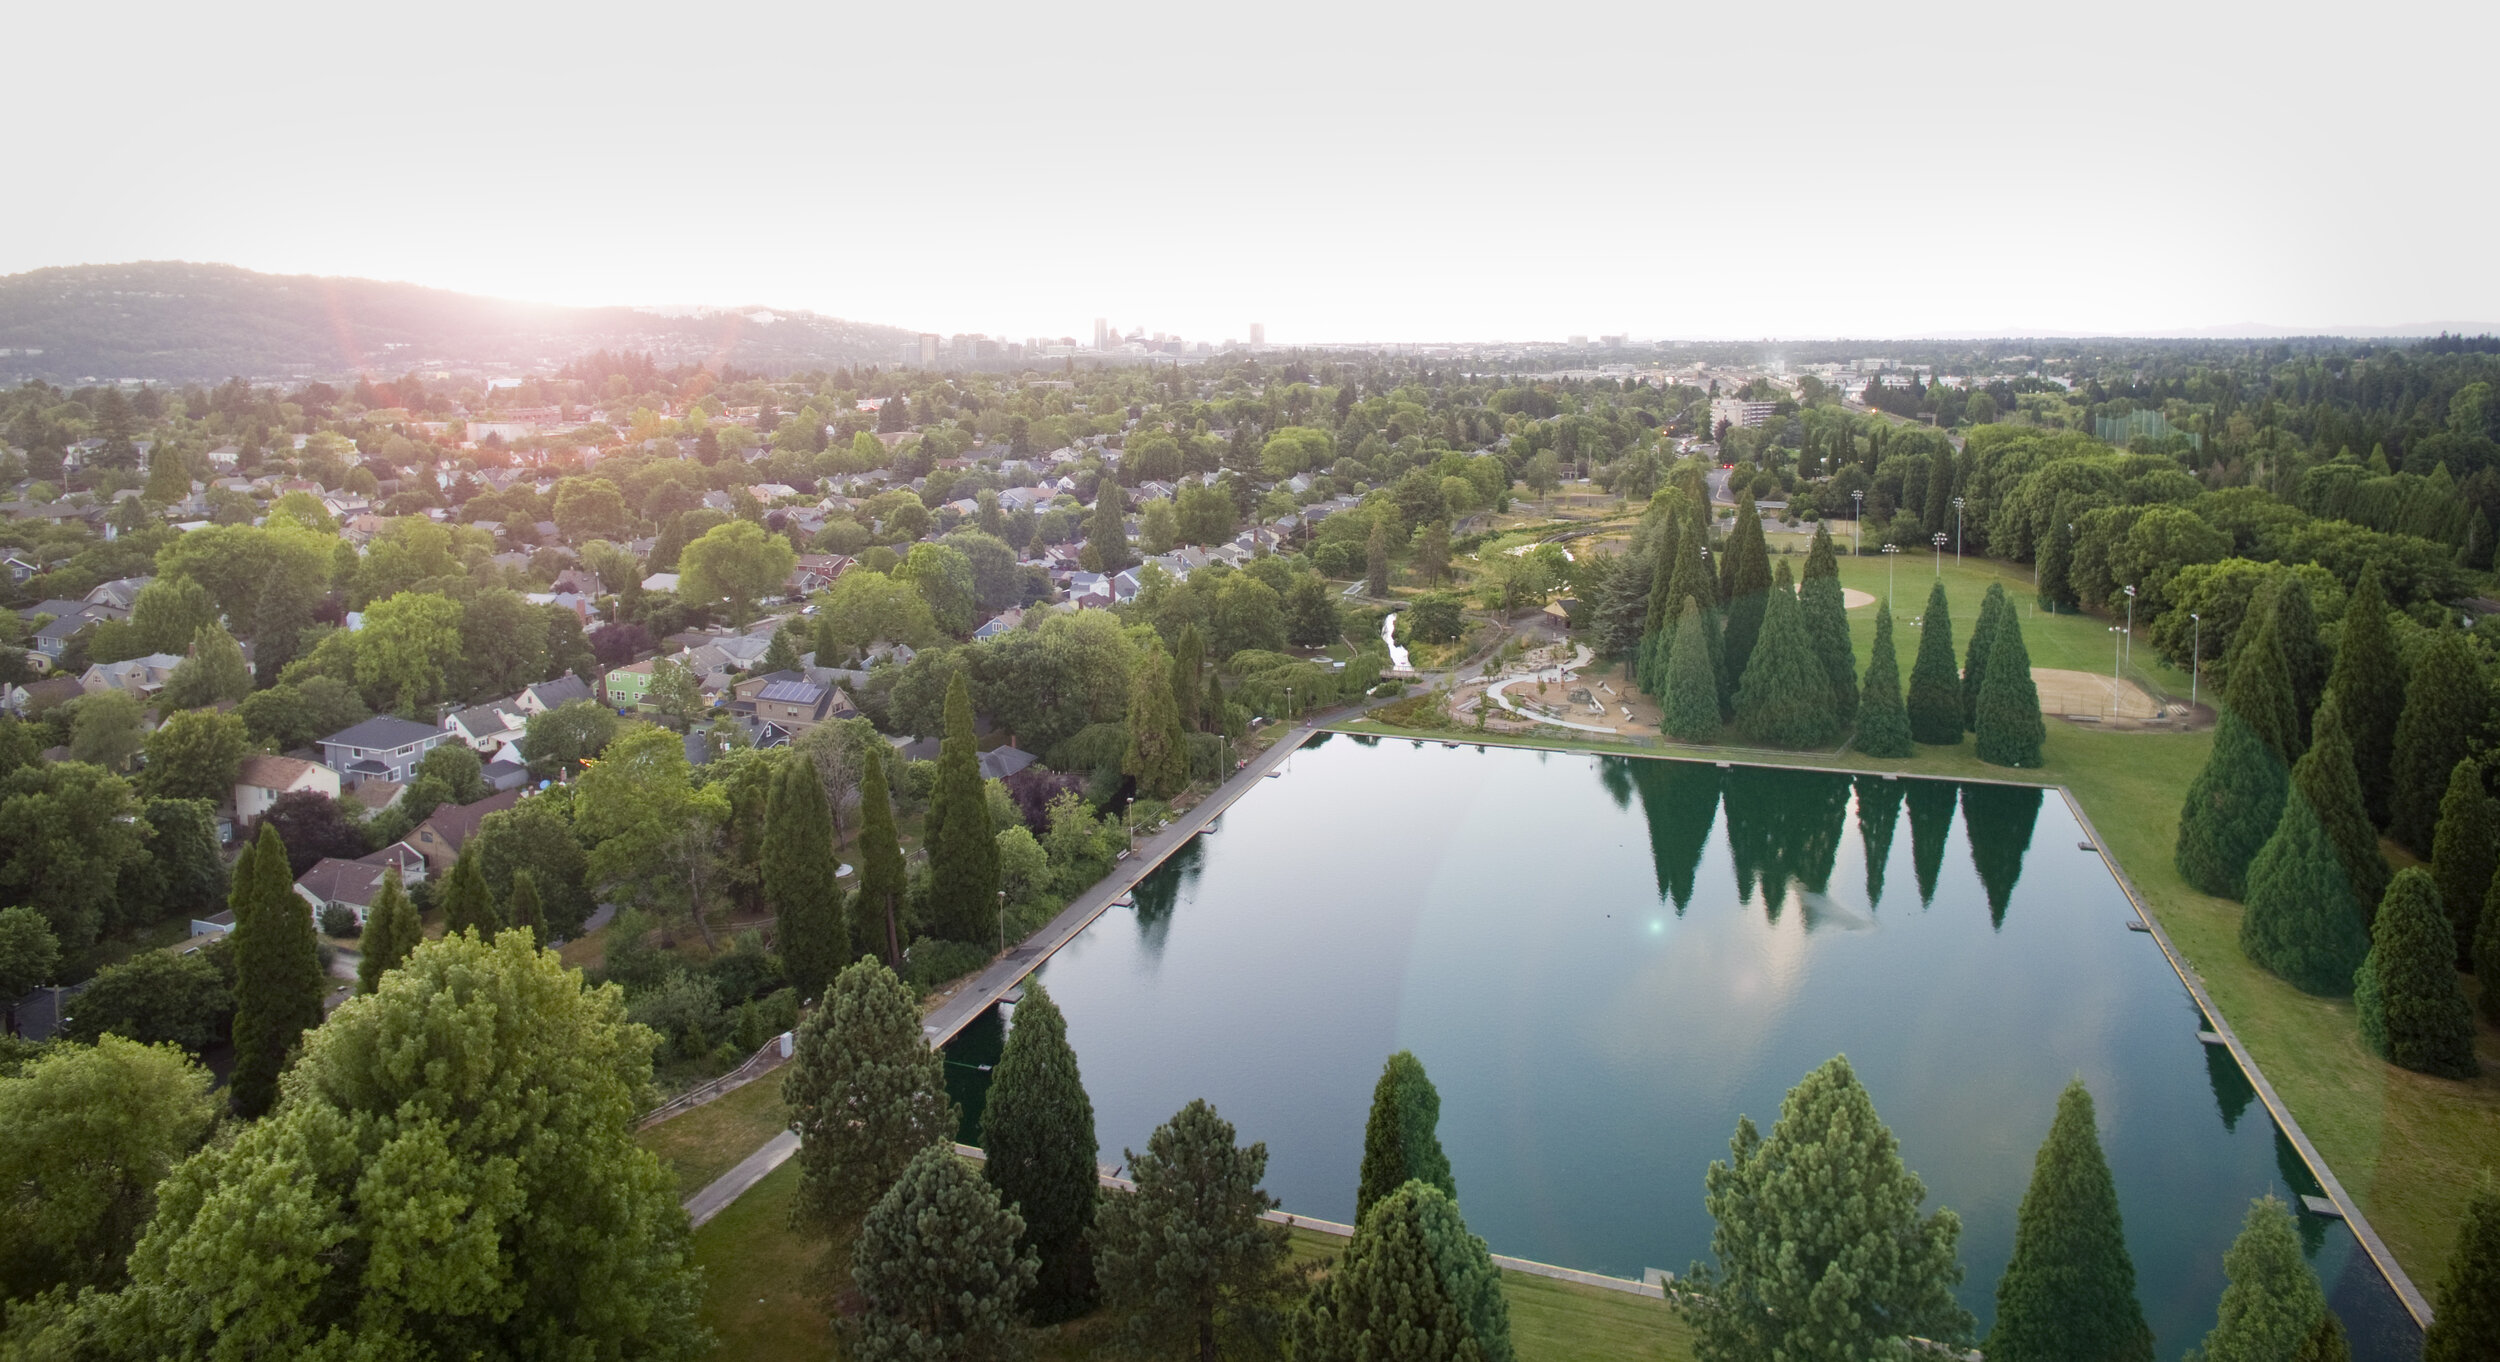 aerial shot of westmoreland park, pond in foreground, nature play area visible, portland skyline in distance